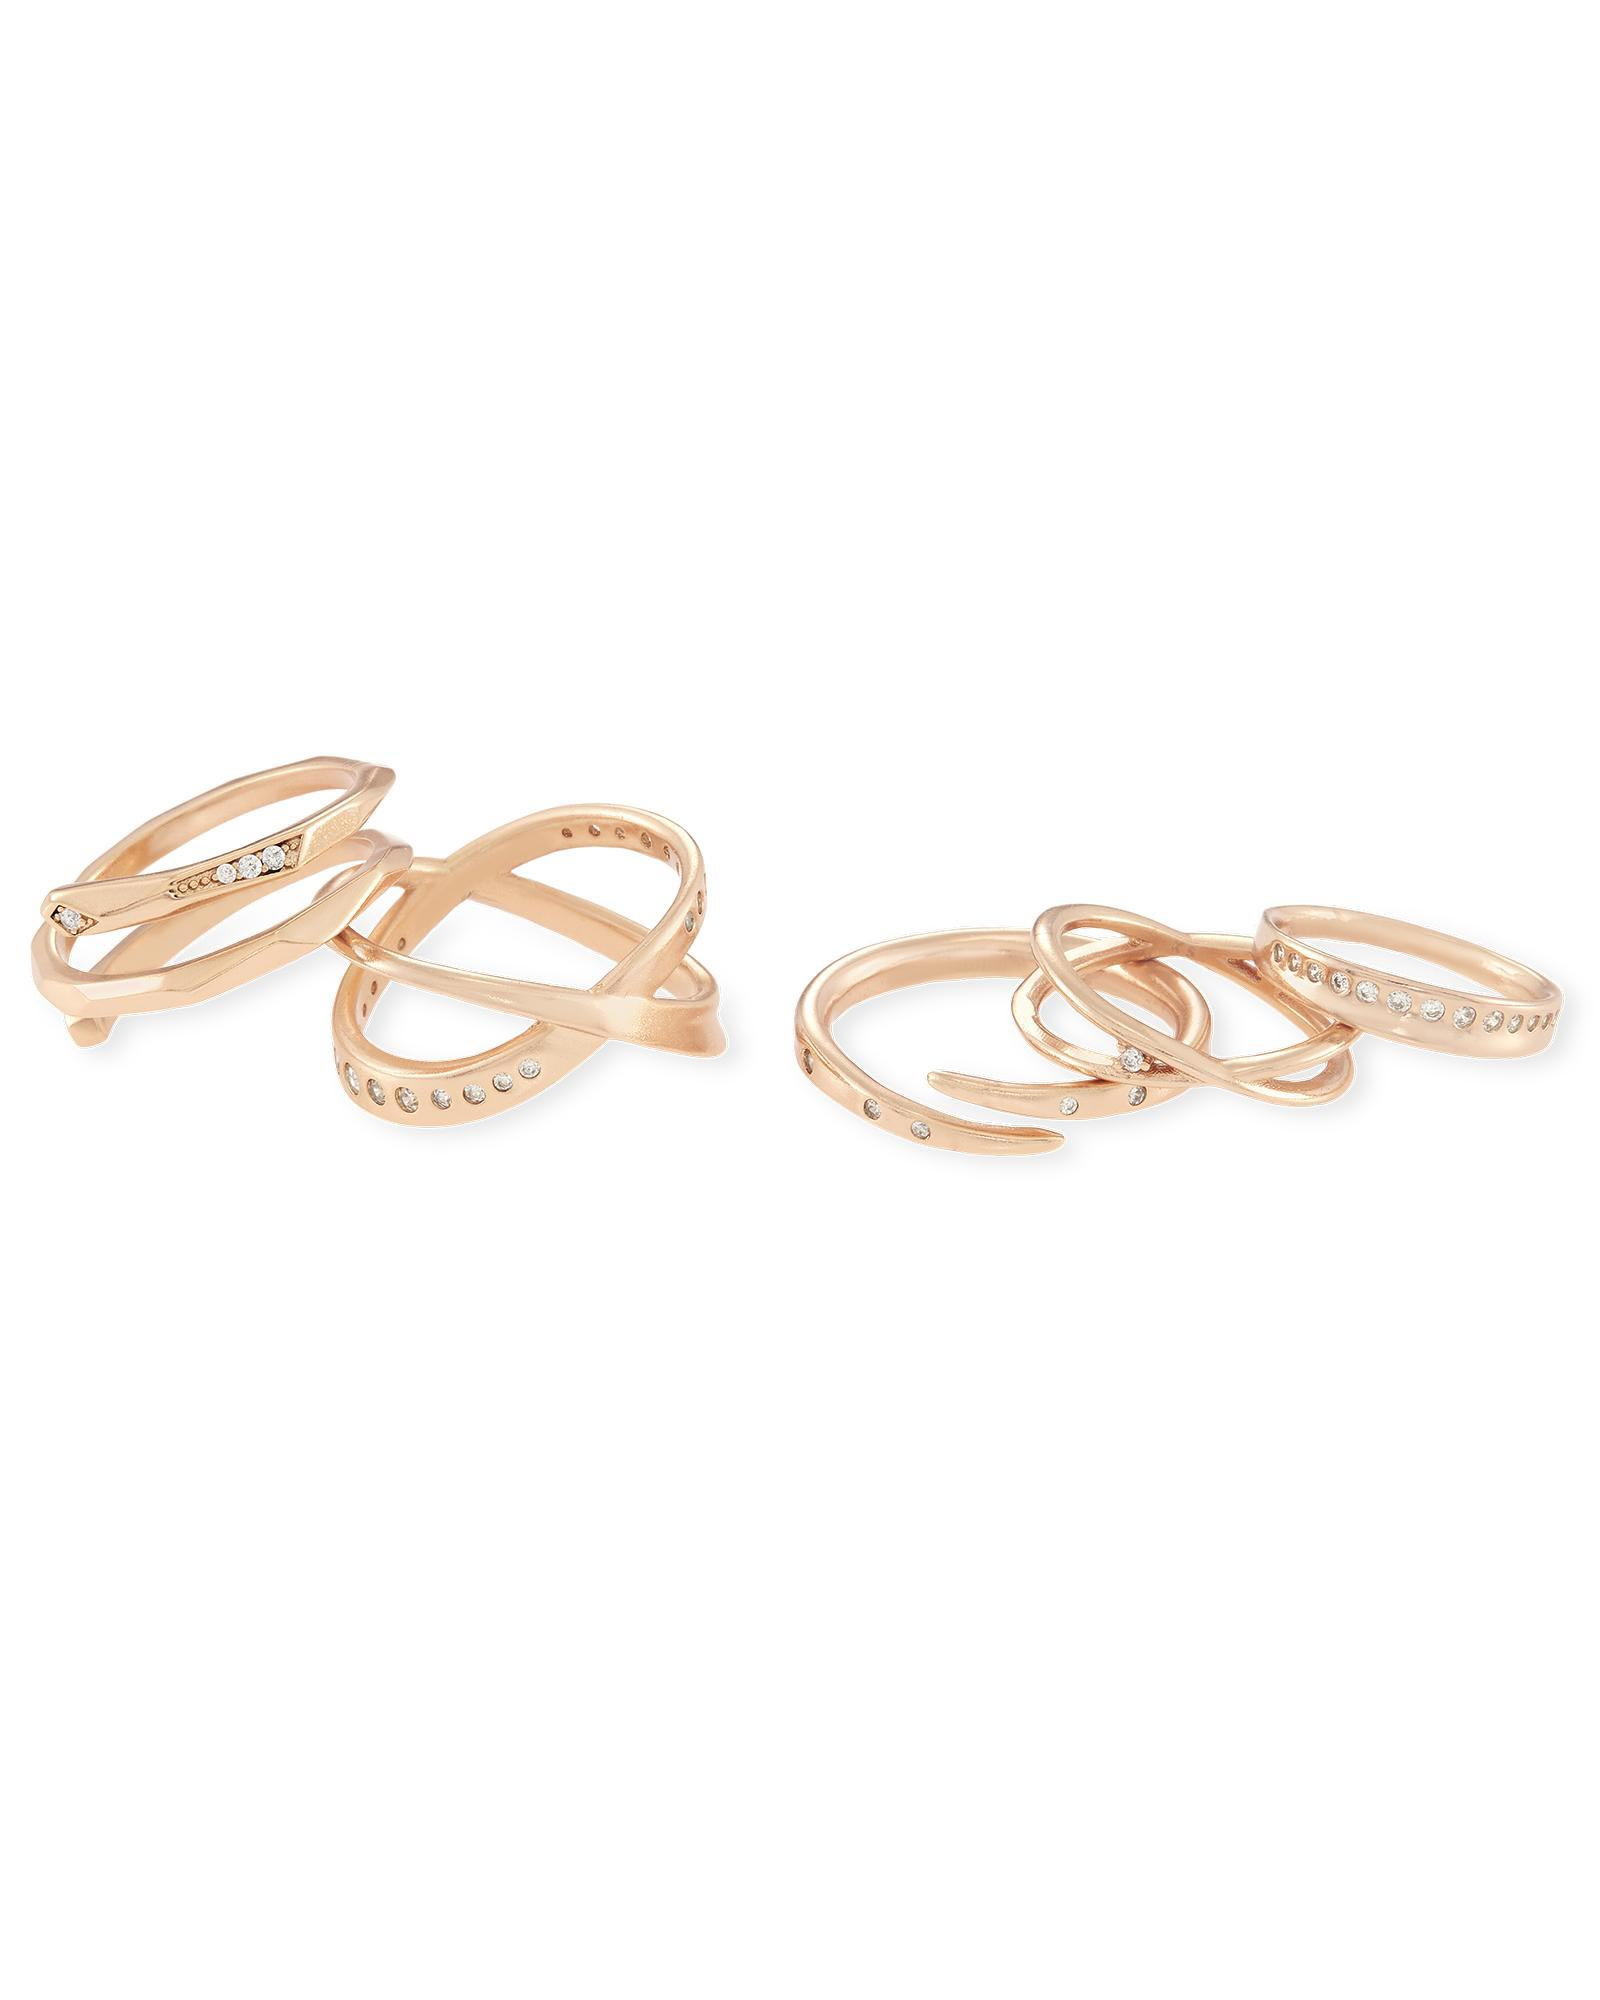 c5764aaea3 Robyn Rose Gold Stackable Ring Set, 5 Rings | Kendra Scott